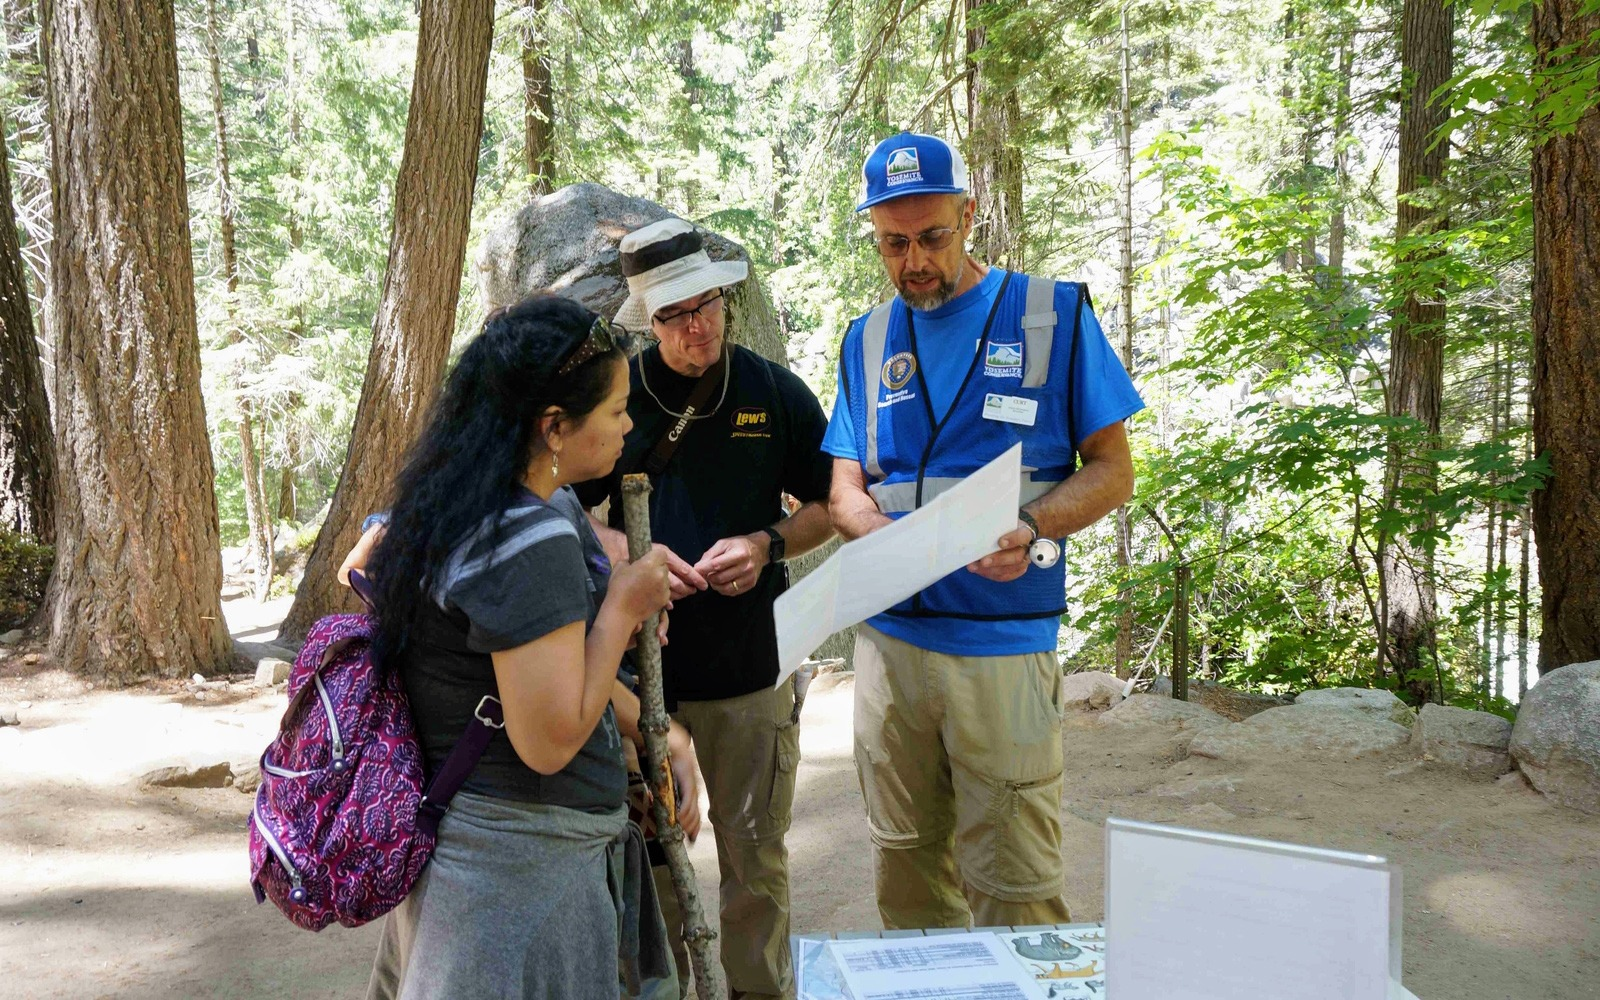 A 2019 Conservancy volunteer shares information with hikers at a Preventive Search and Rescue station.